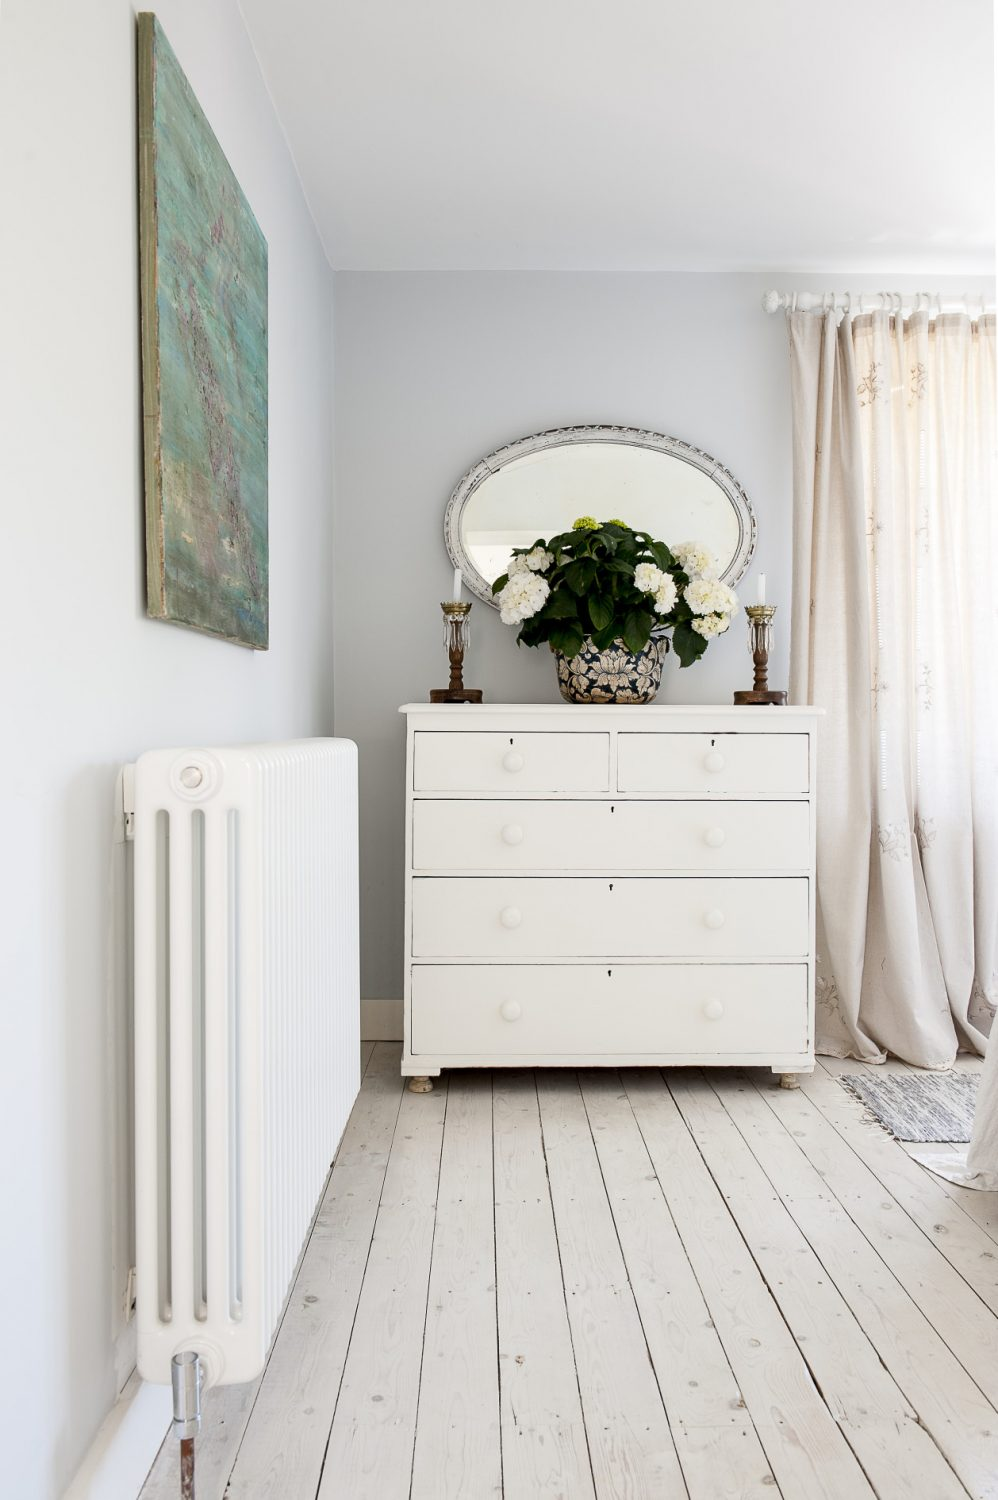 The bedrom is decorated in very simple and restful tones – pale walls and floorboards, curtains made from linen tablecloths found at a Portuguese street market